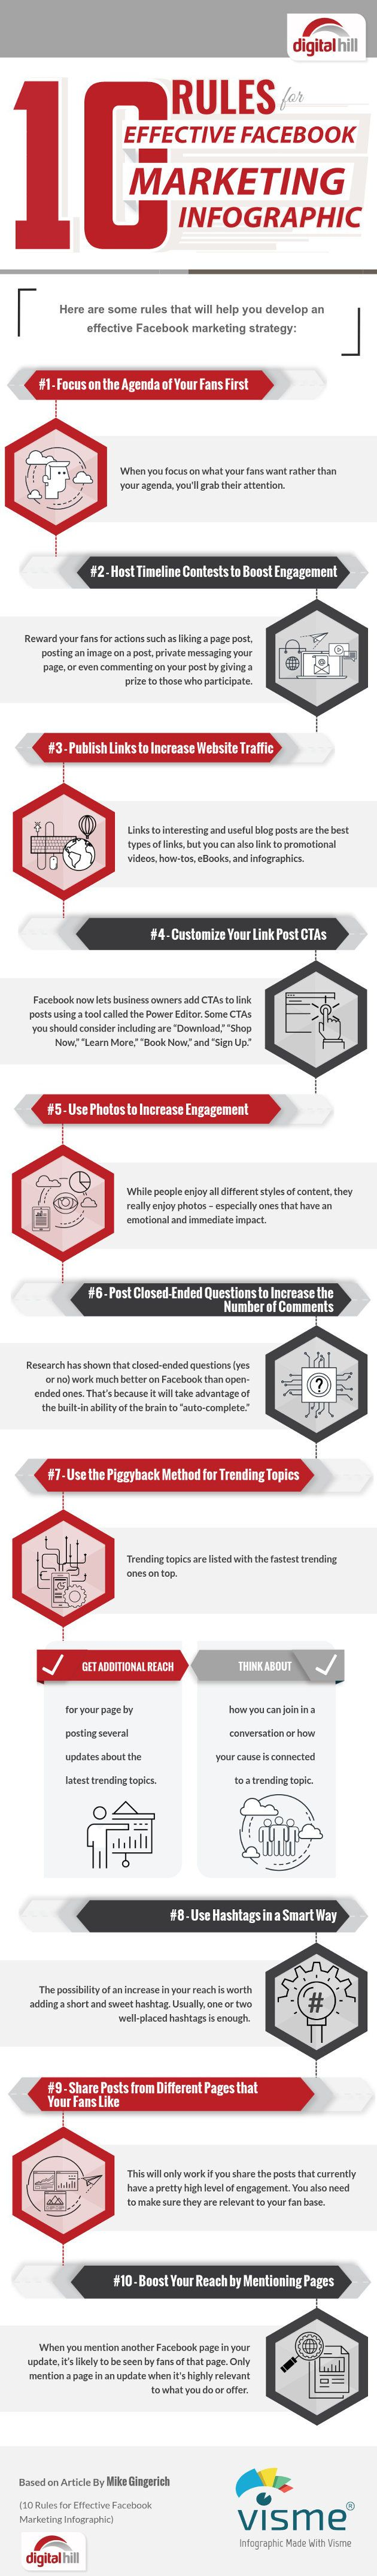 Social Media - 10 Rules for Effective Facebook Marketing [Infographic] : MarketingProfs Article